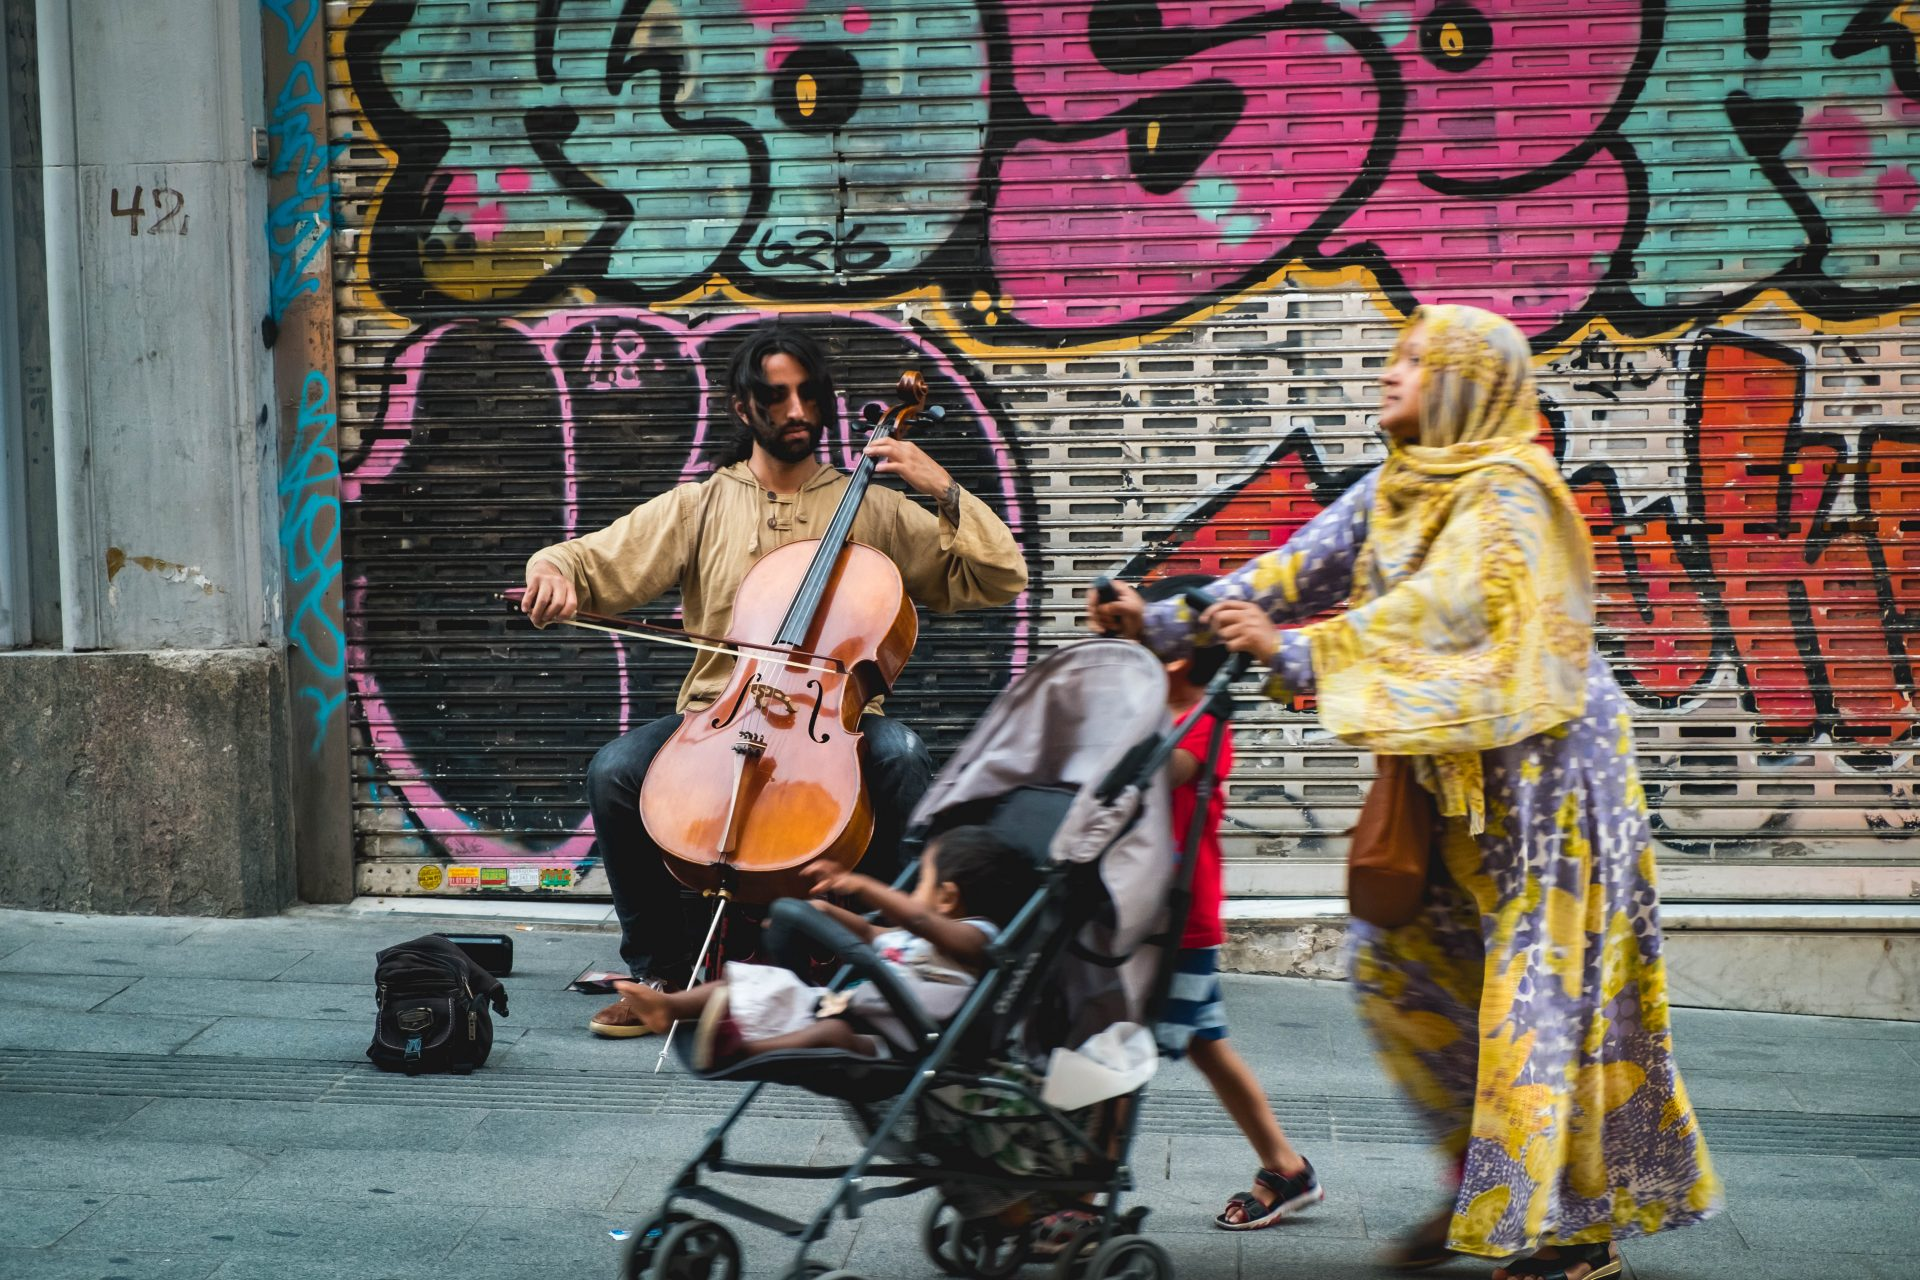 Women walking with her baby and child in front of street performer playing the viola photo by Jo Kassis